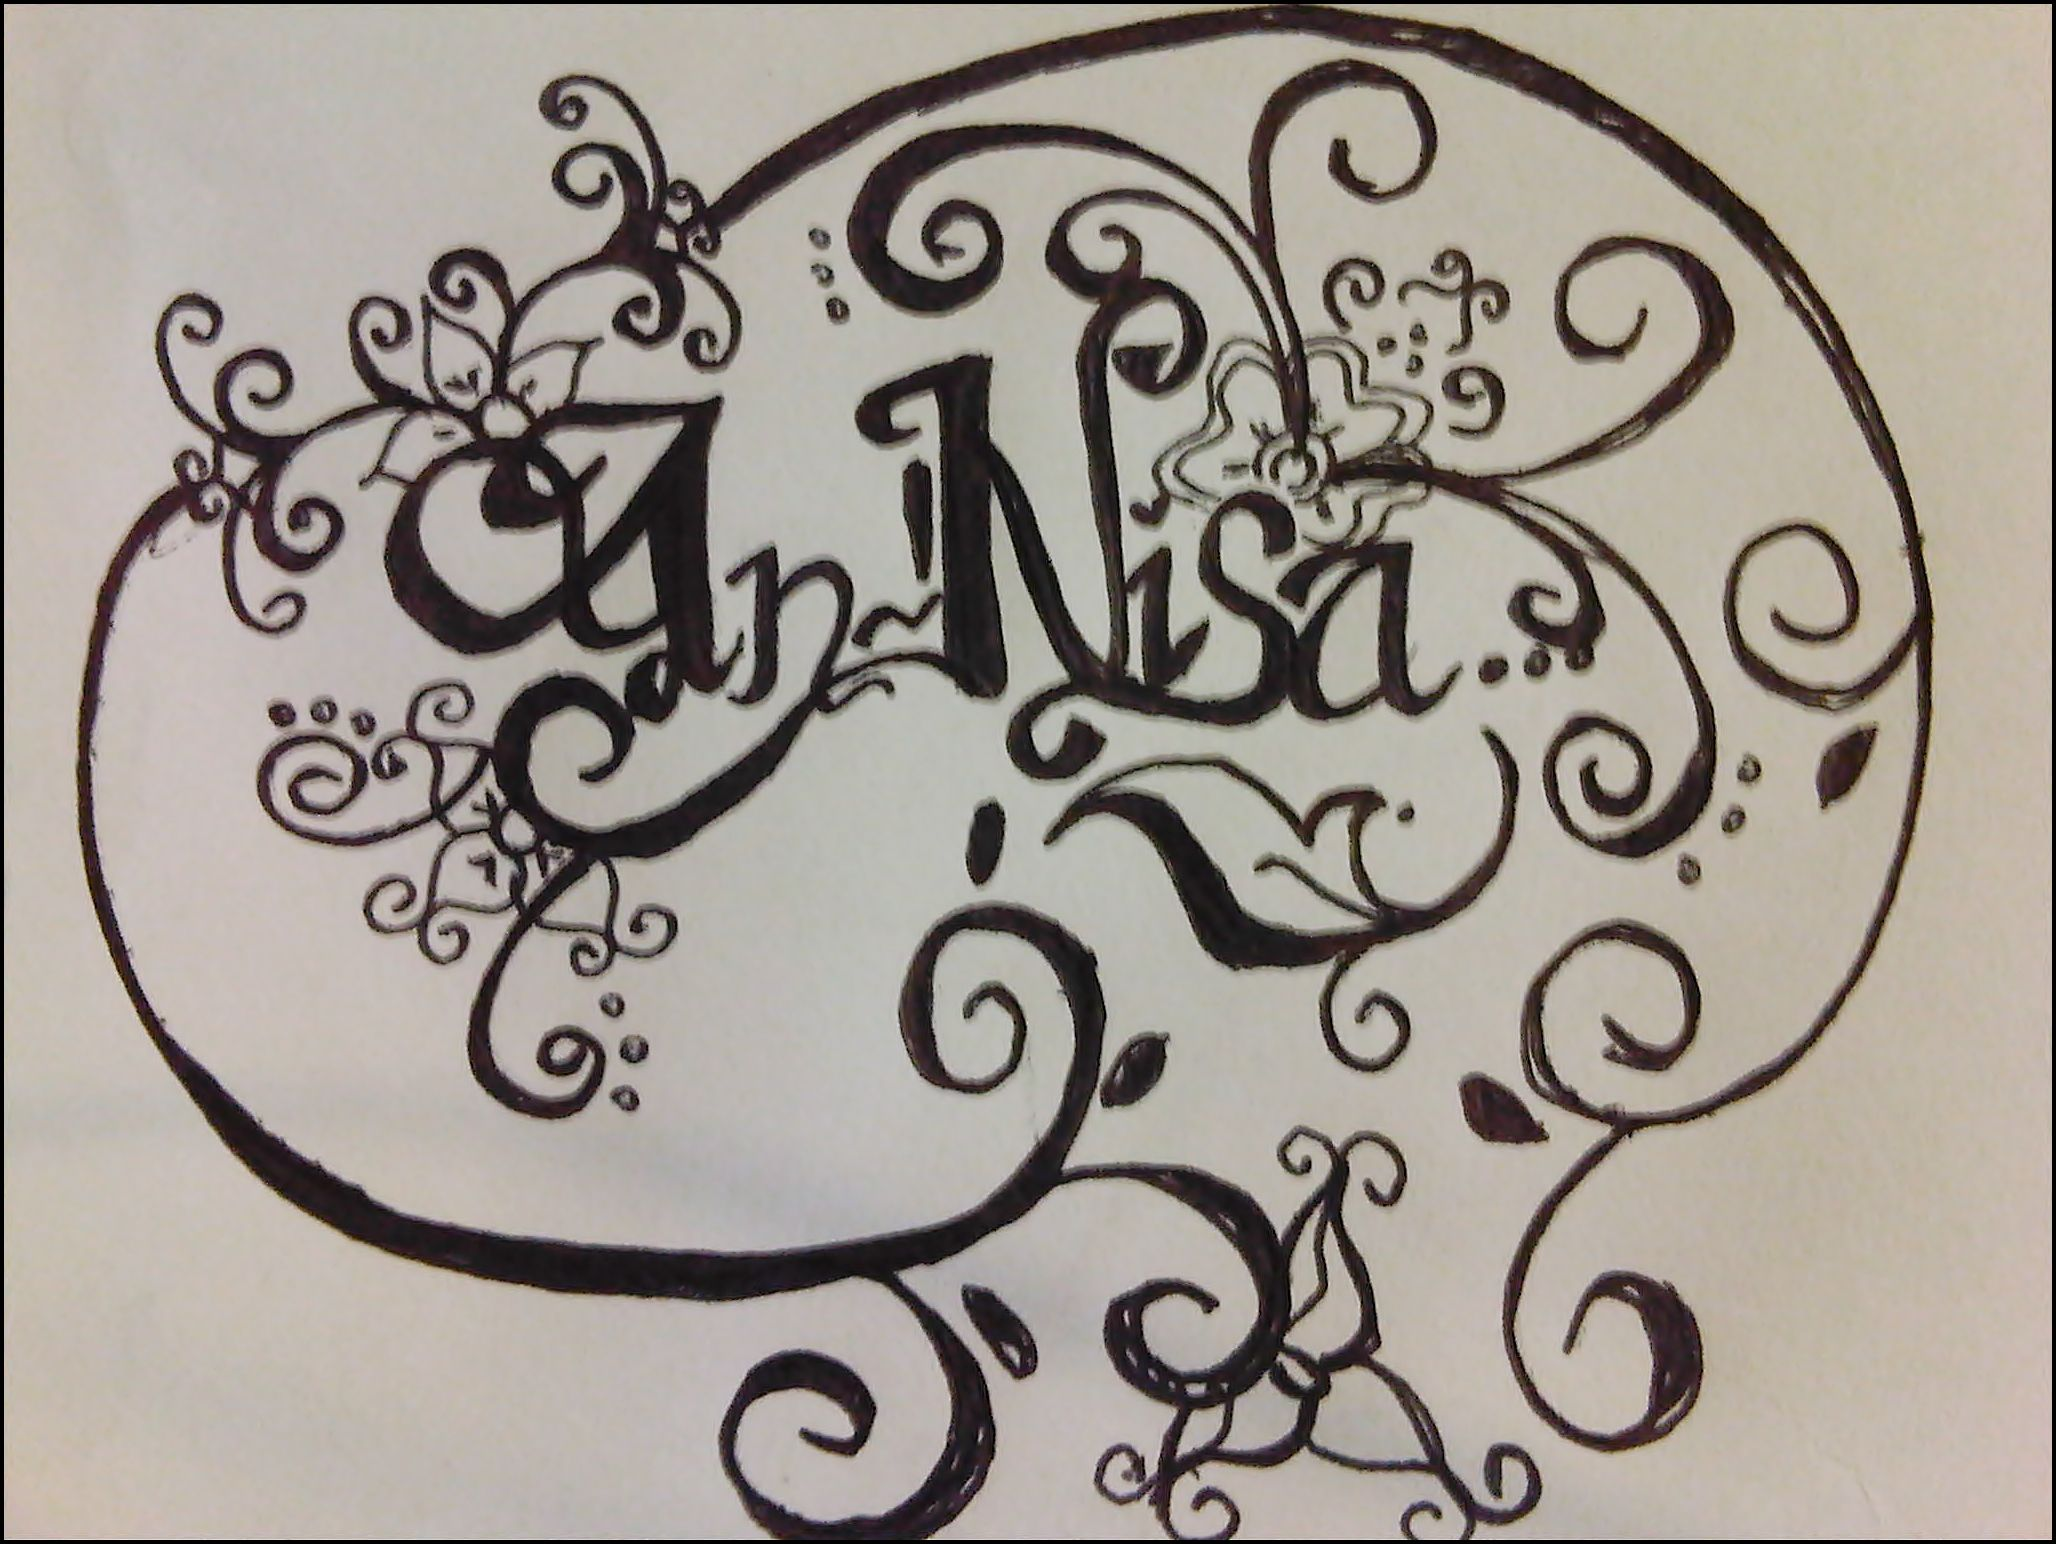 Uncategorized Name Sketches my name is annisa sketch and drawing pinterest sketches annisa